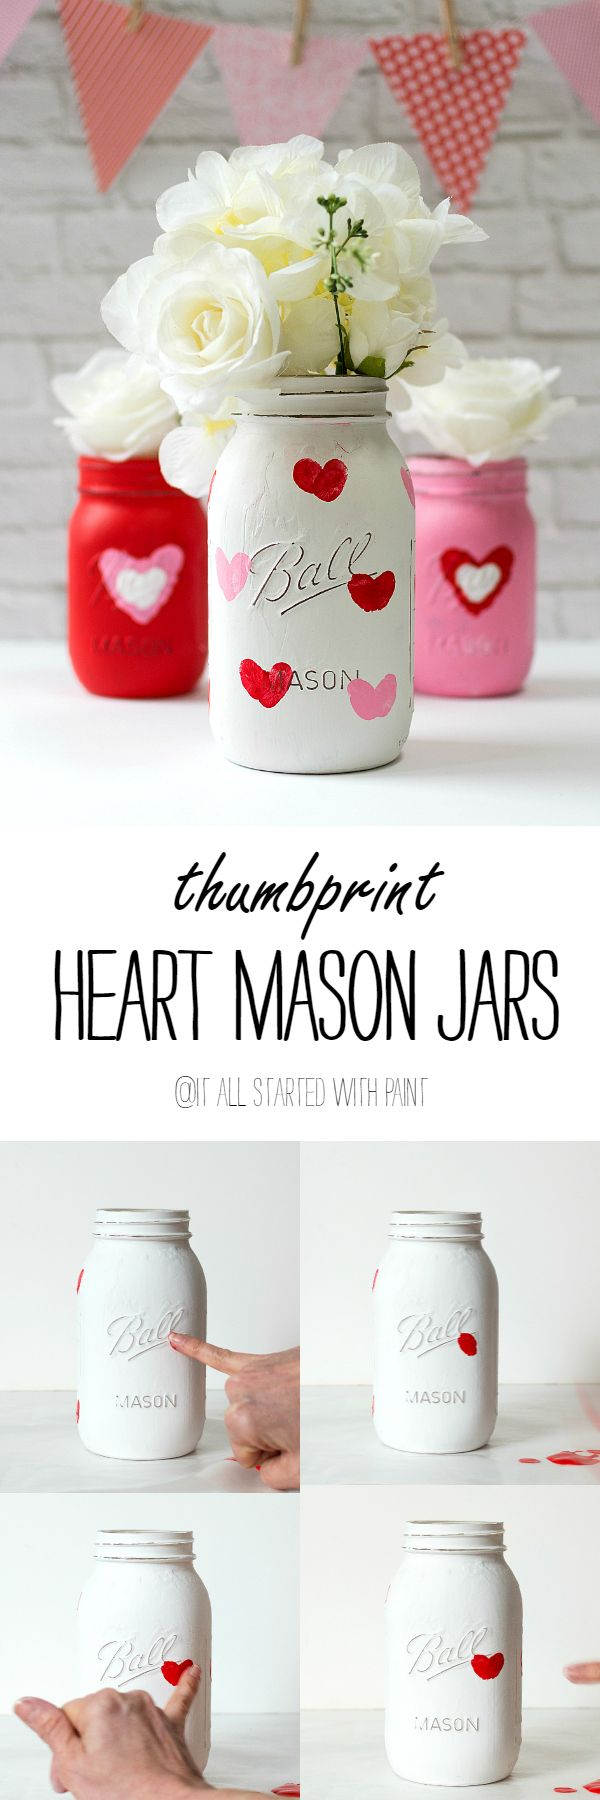 Valentine Kid Craft: Thumbprint Heart Jars - the perfect afternoon DIY for your apartment. Founded in 1969, CLV Group is committed to helping you find your next perfect space in great communities across Ontario and Quebec, with the convenience, resident services, and amenities you need to make yourself feel at home. www.clvgroup.com